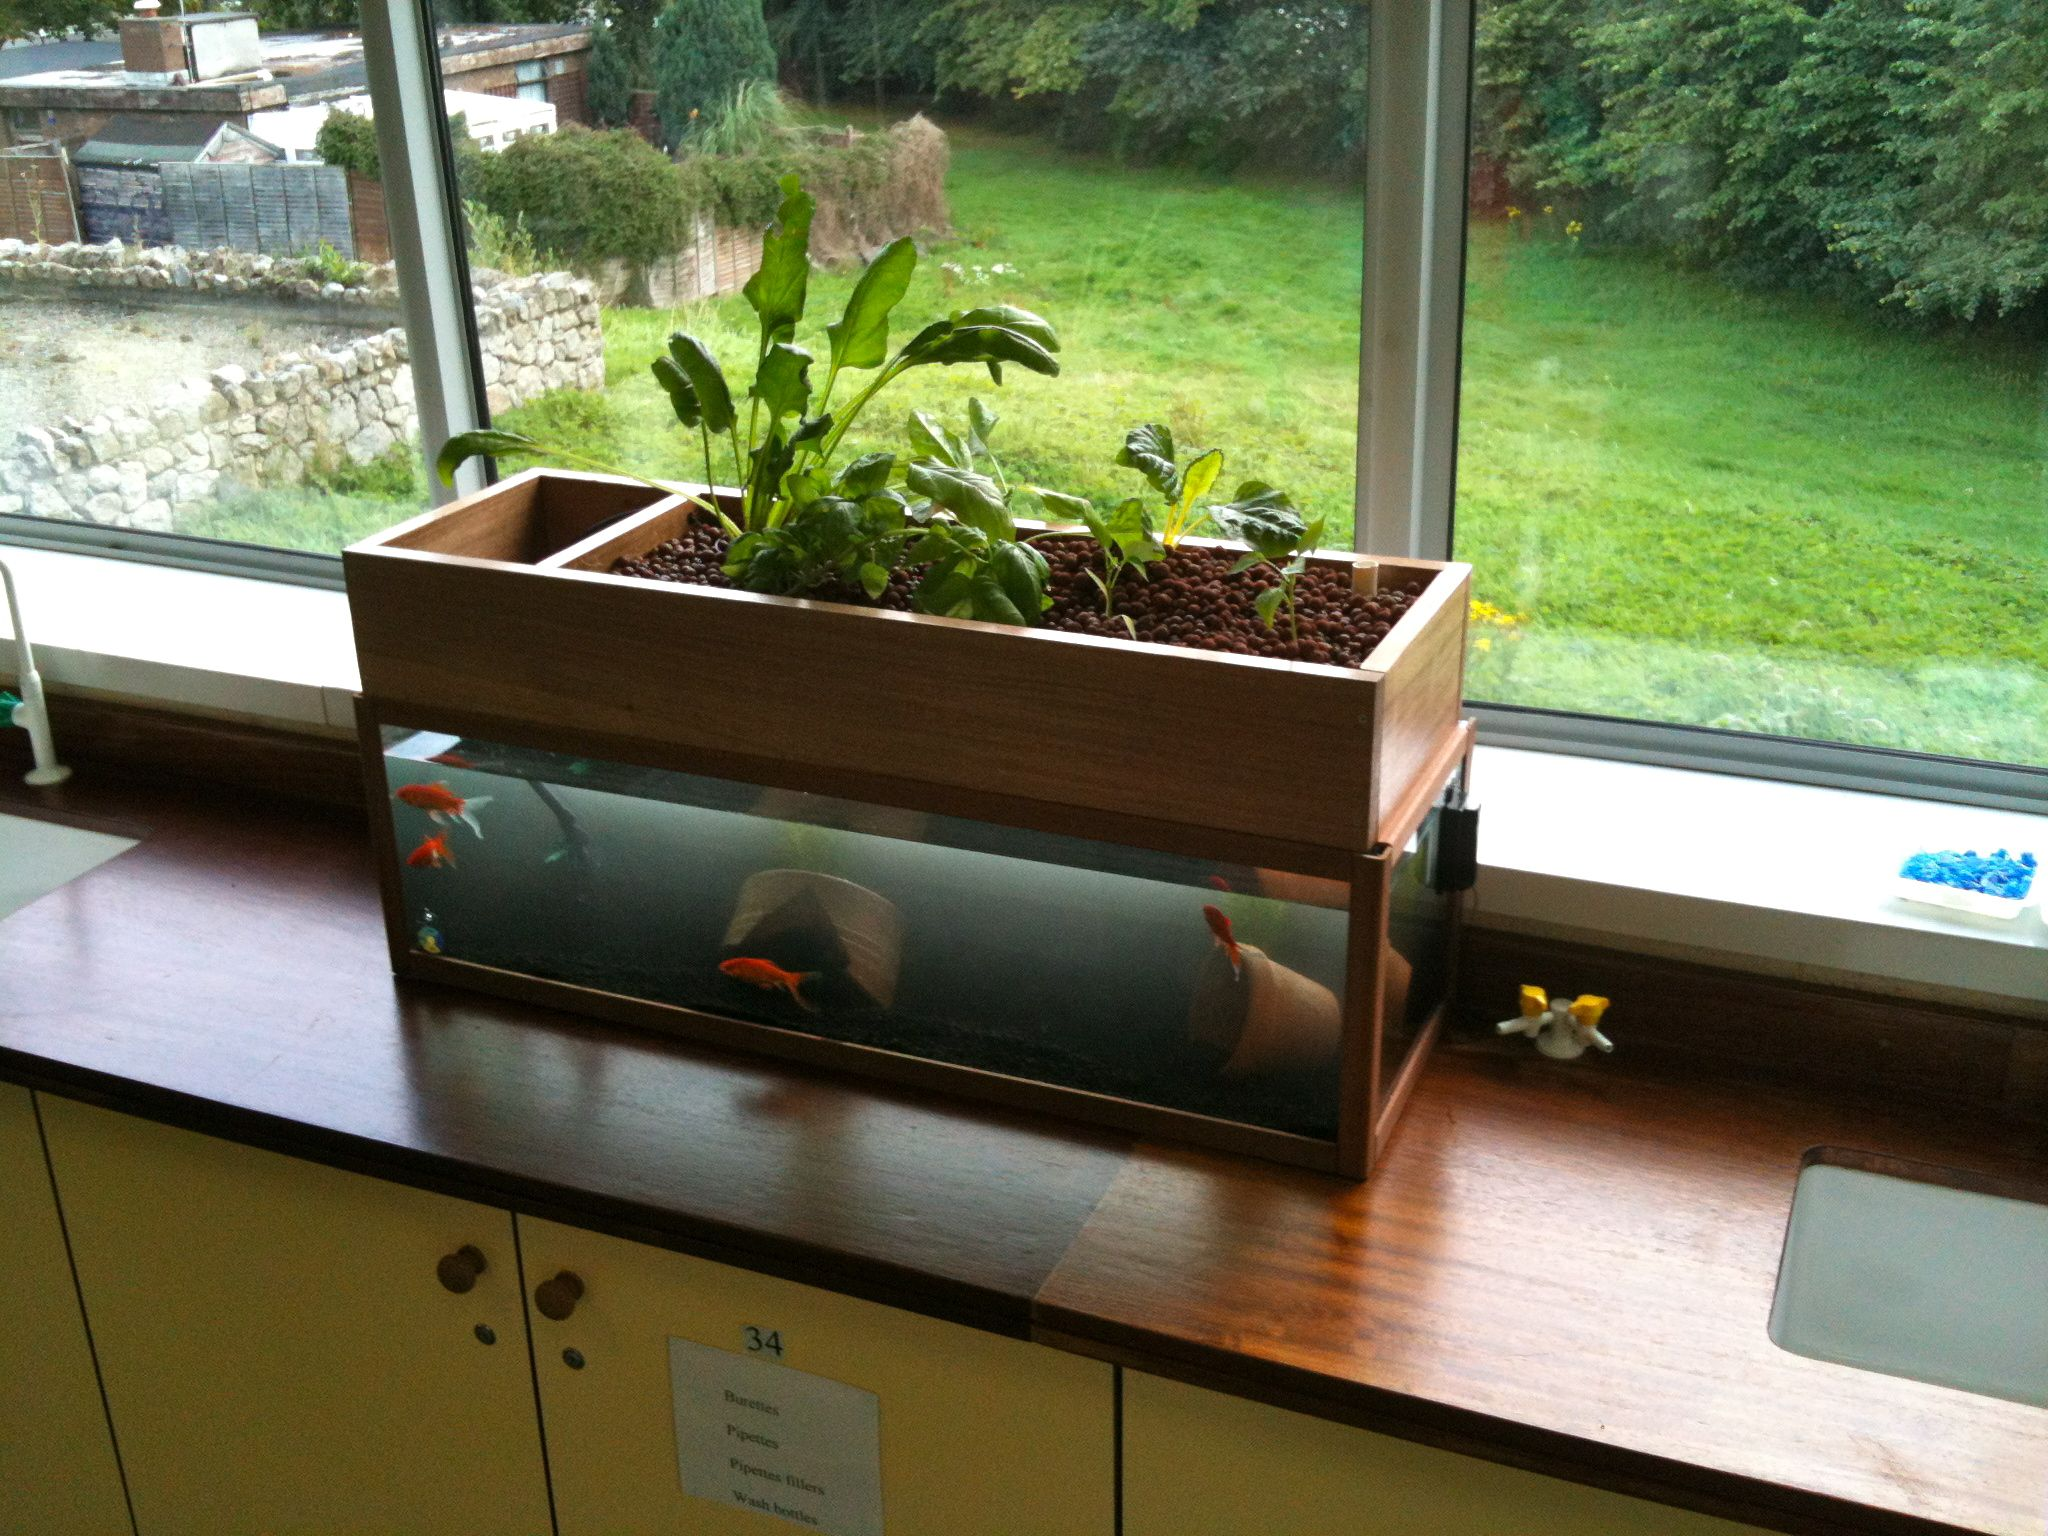 Build your own aquaponic system aquaponics system for Fish and plants in aquaponics